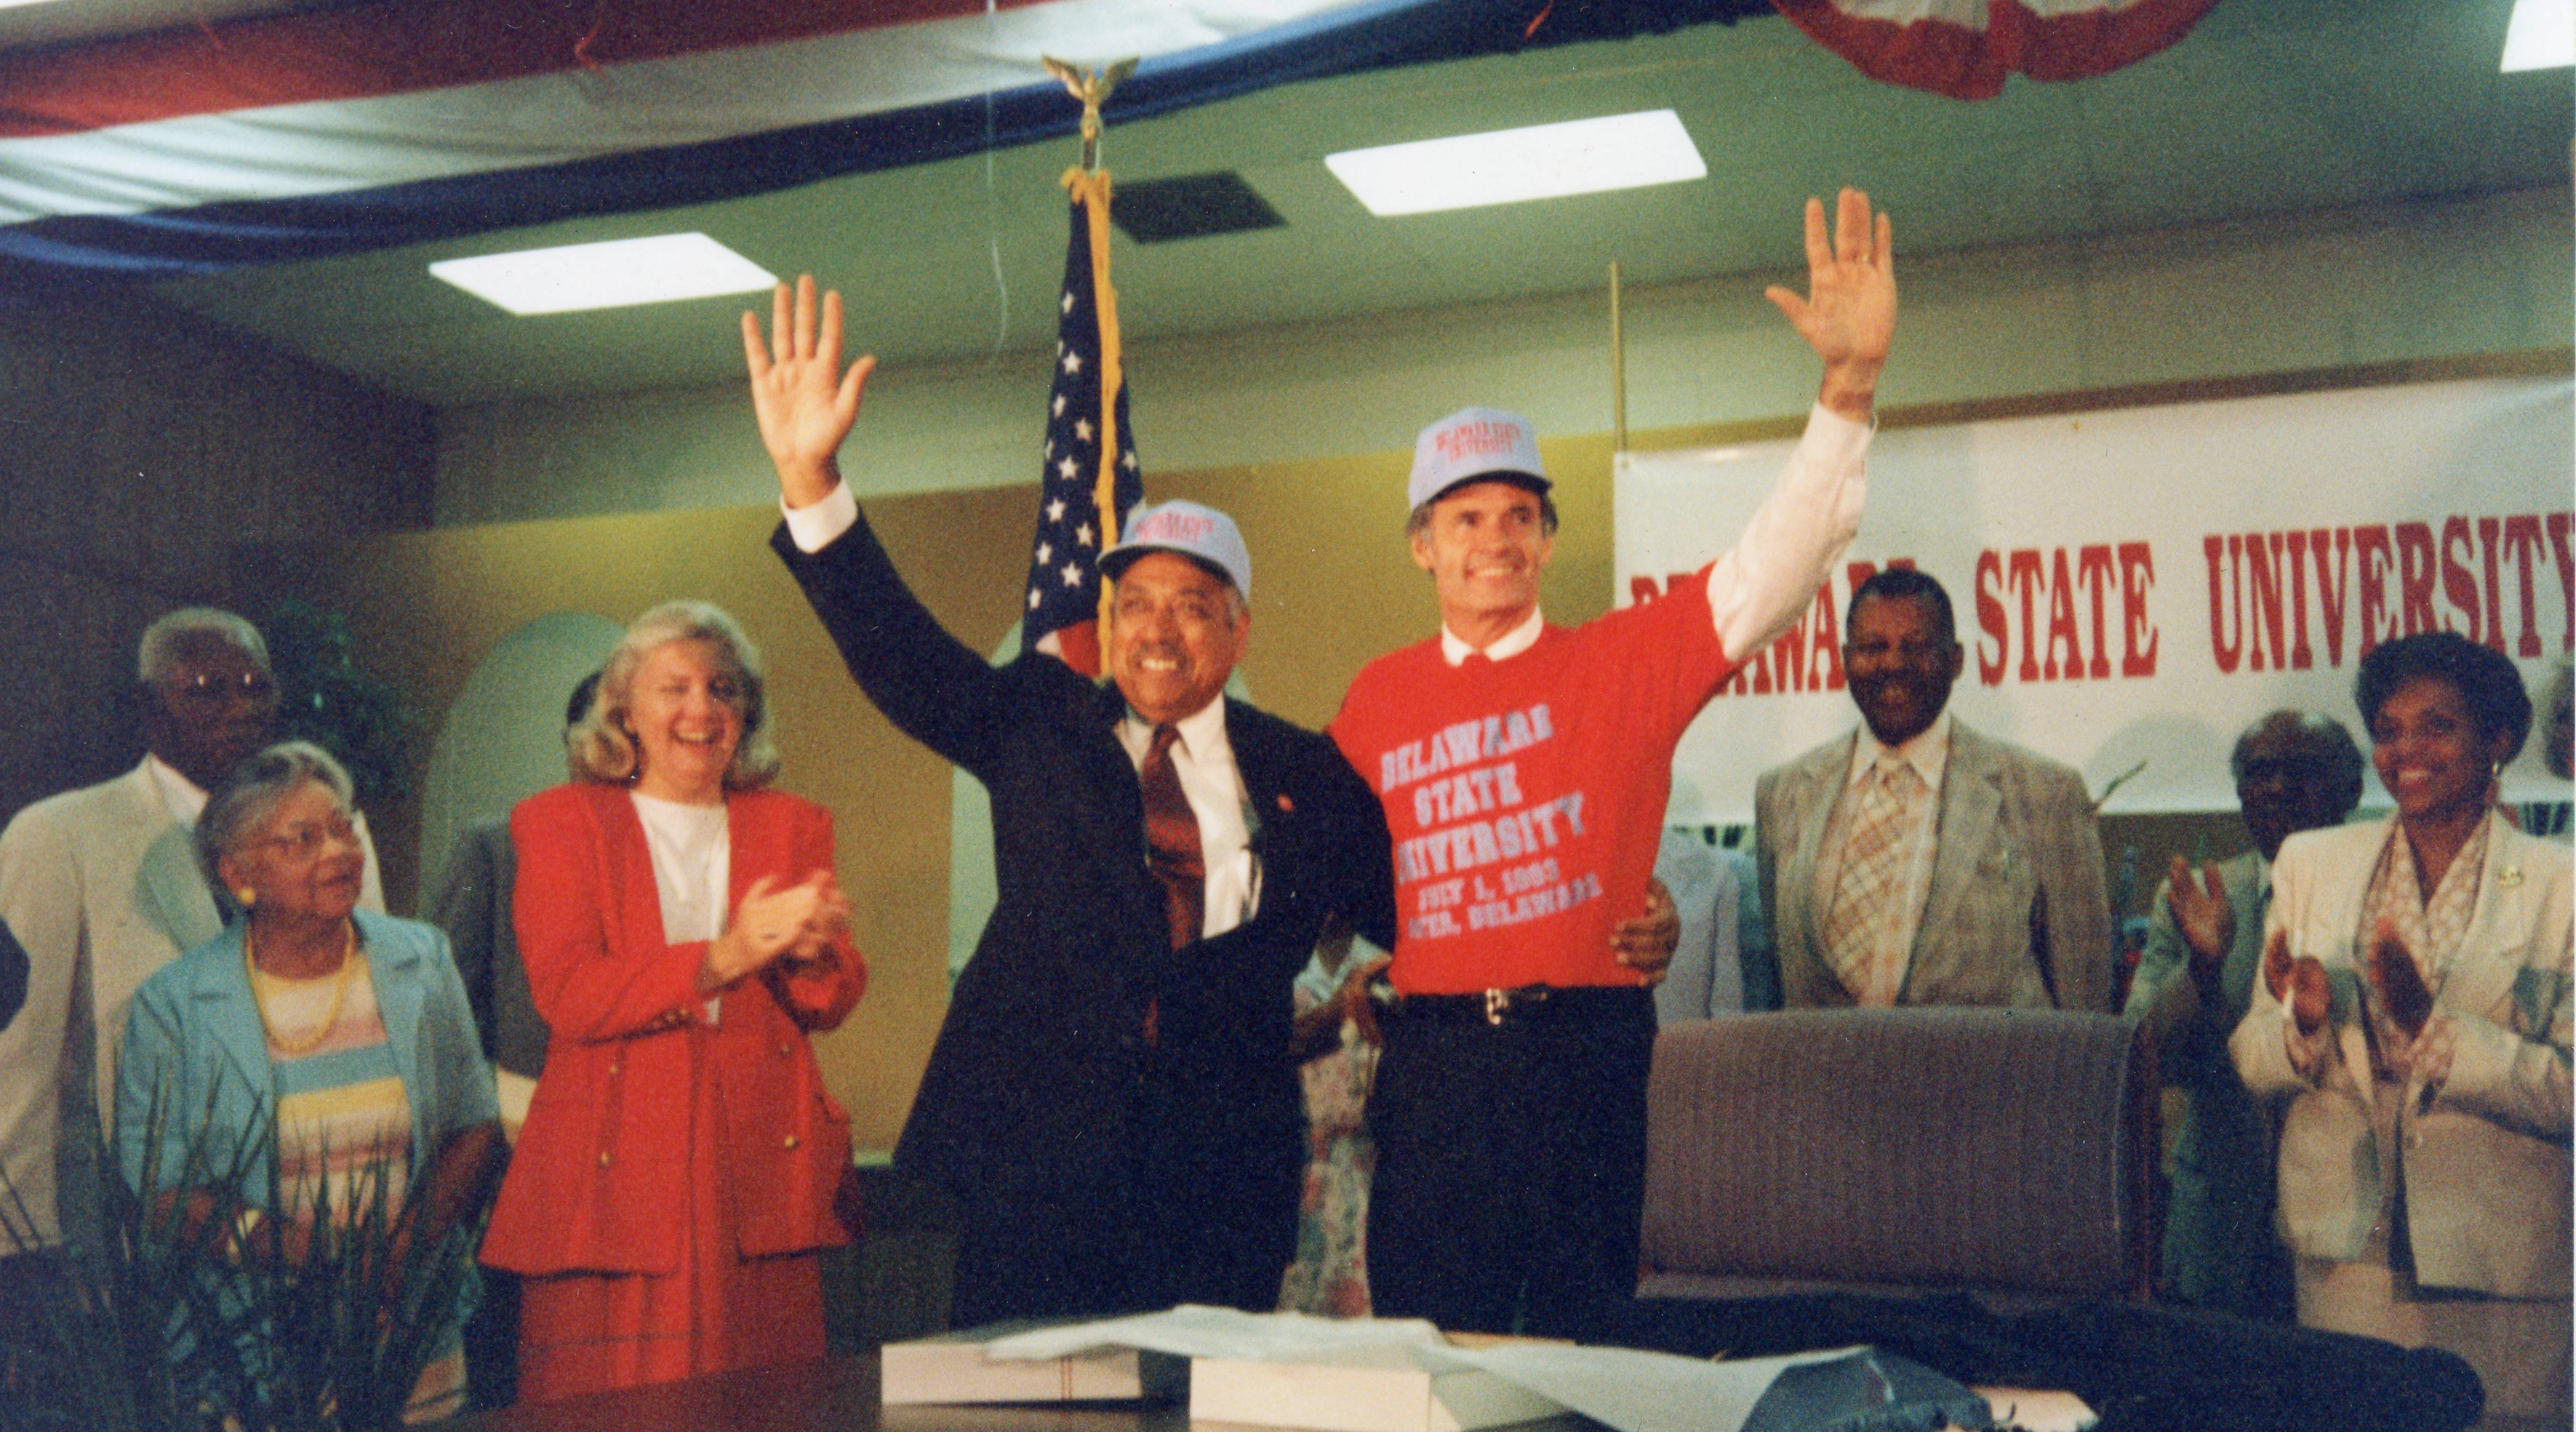 On July 1, 1993, William B. DeLauder, president of Delaware State University, waves with Gov. Tom Carper at the signing of Senate Bill 138 which changed Delaware State College to Delaware State University. Looking on in the background, from left, are Senator Herman Holloway Sr., Hattie Mishoe, Representative Nancy Wagner, James C. Hardcastle and Vermell DeLauder.